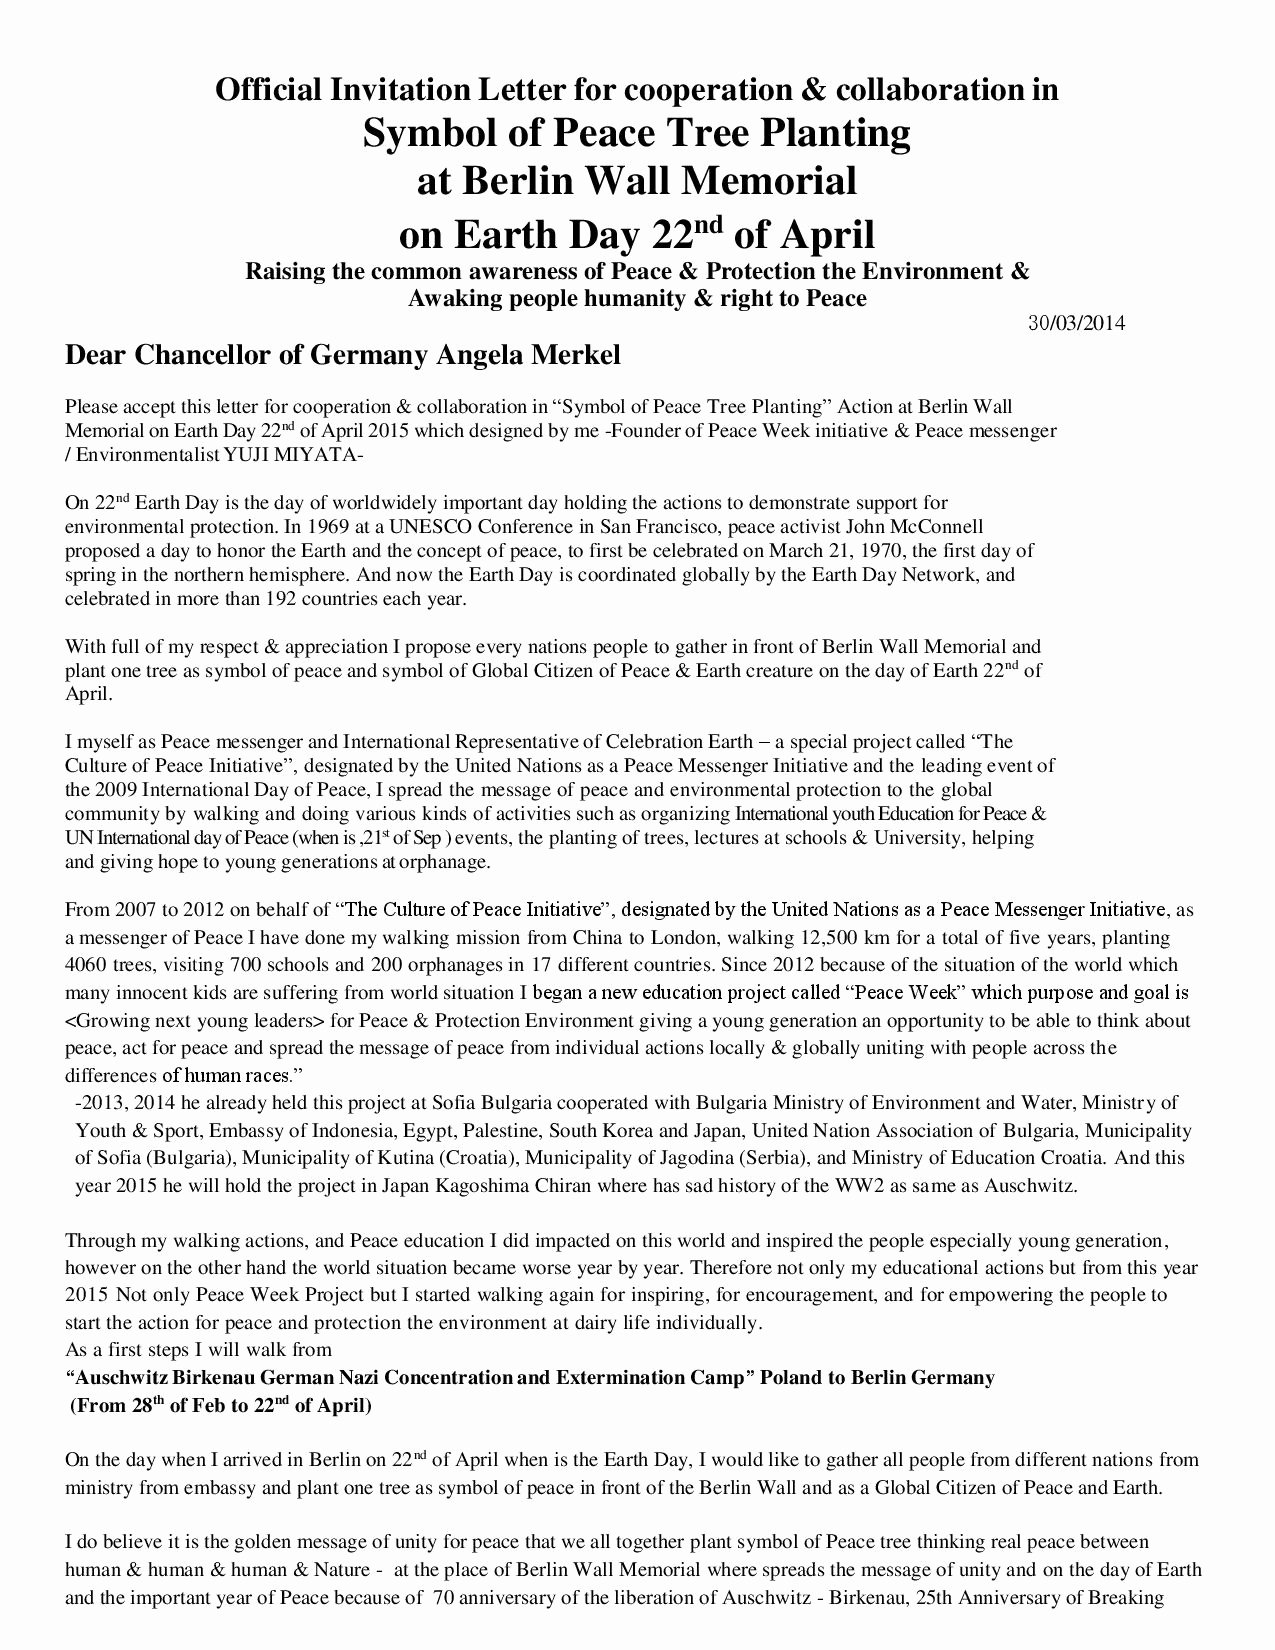 official invitation letter for cooperation collaboration in symbol of peace tree planting at berlin wall memorial on earth day 22nd of april